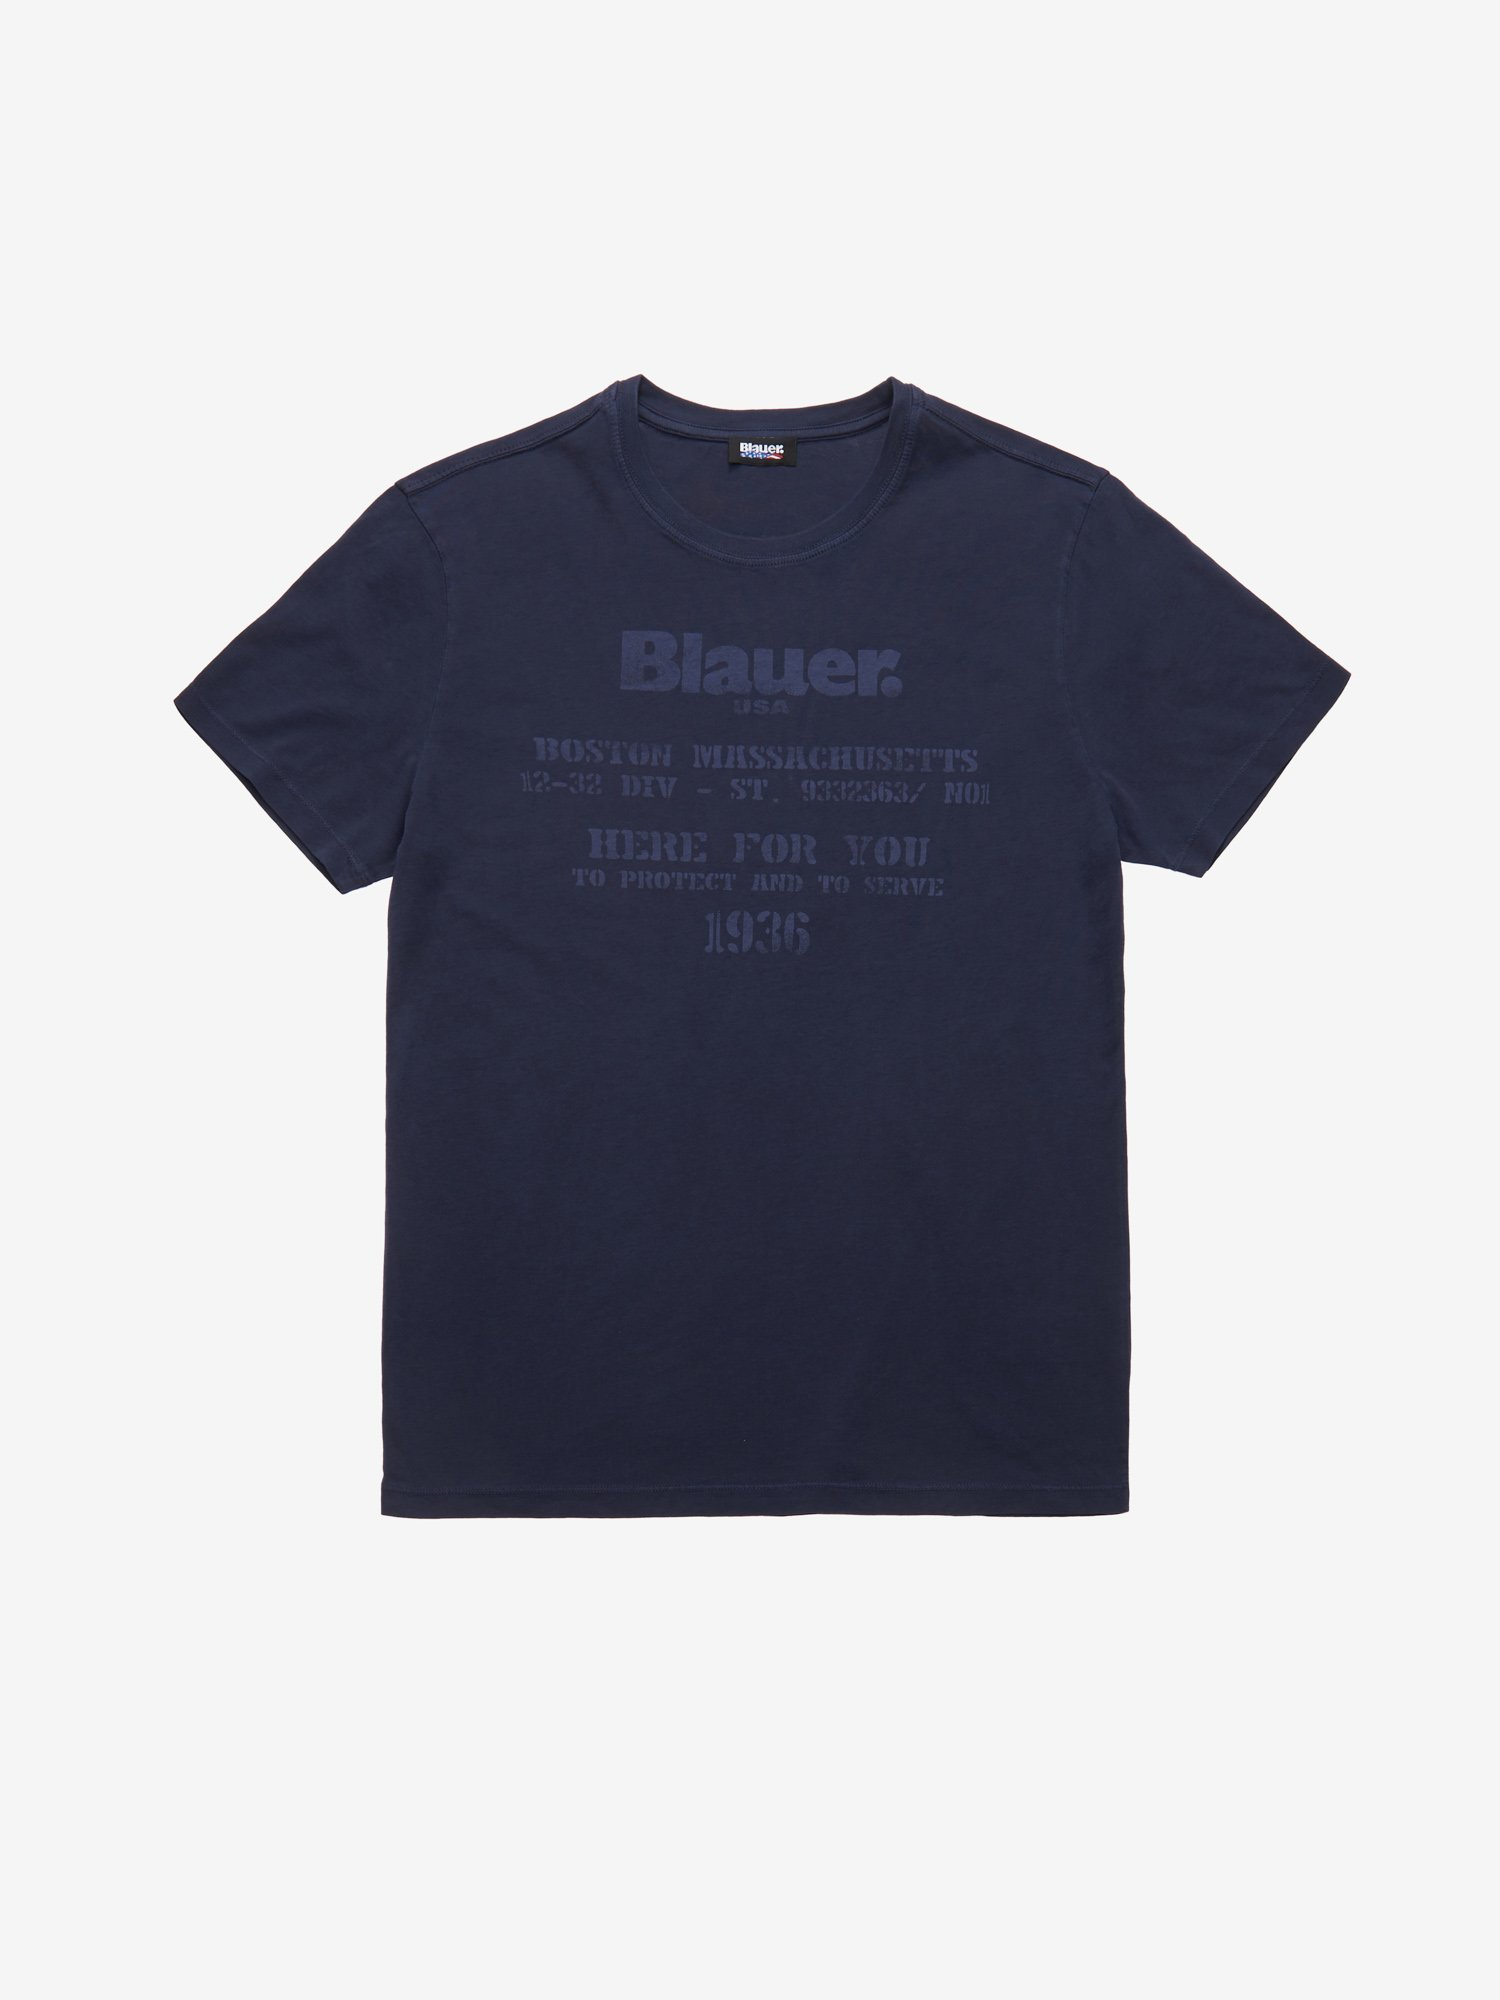 Blauer - PROTECT AND SERVE T-SHIRT - Blue Ink - Blauer